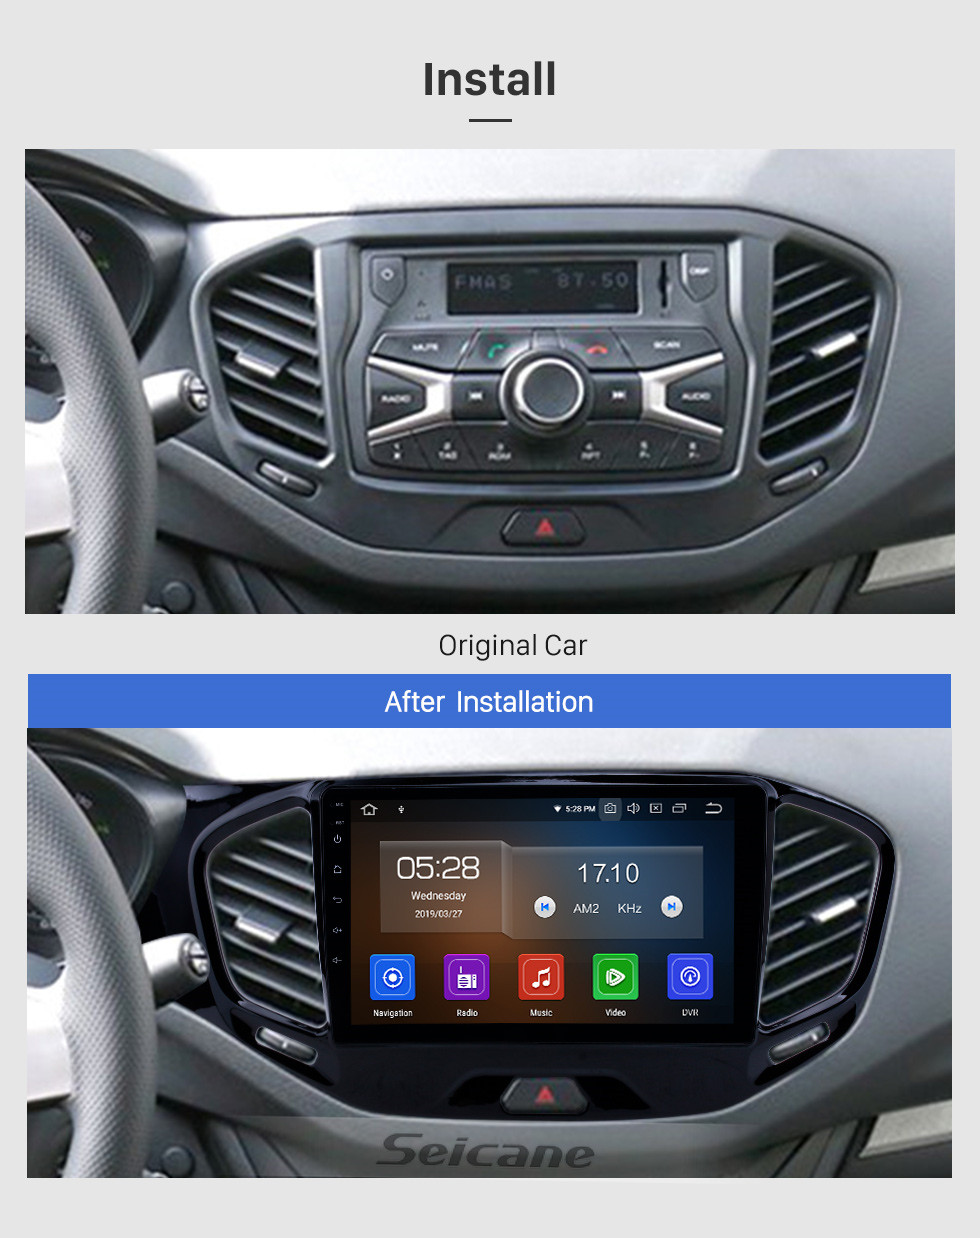 Seicane Android 9.0 9 inch GPS Navigation Radio for 2015-2019 Lada Vesta Cross Sport with HD Touchscreen Carplay Bluetooth support Digital TV